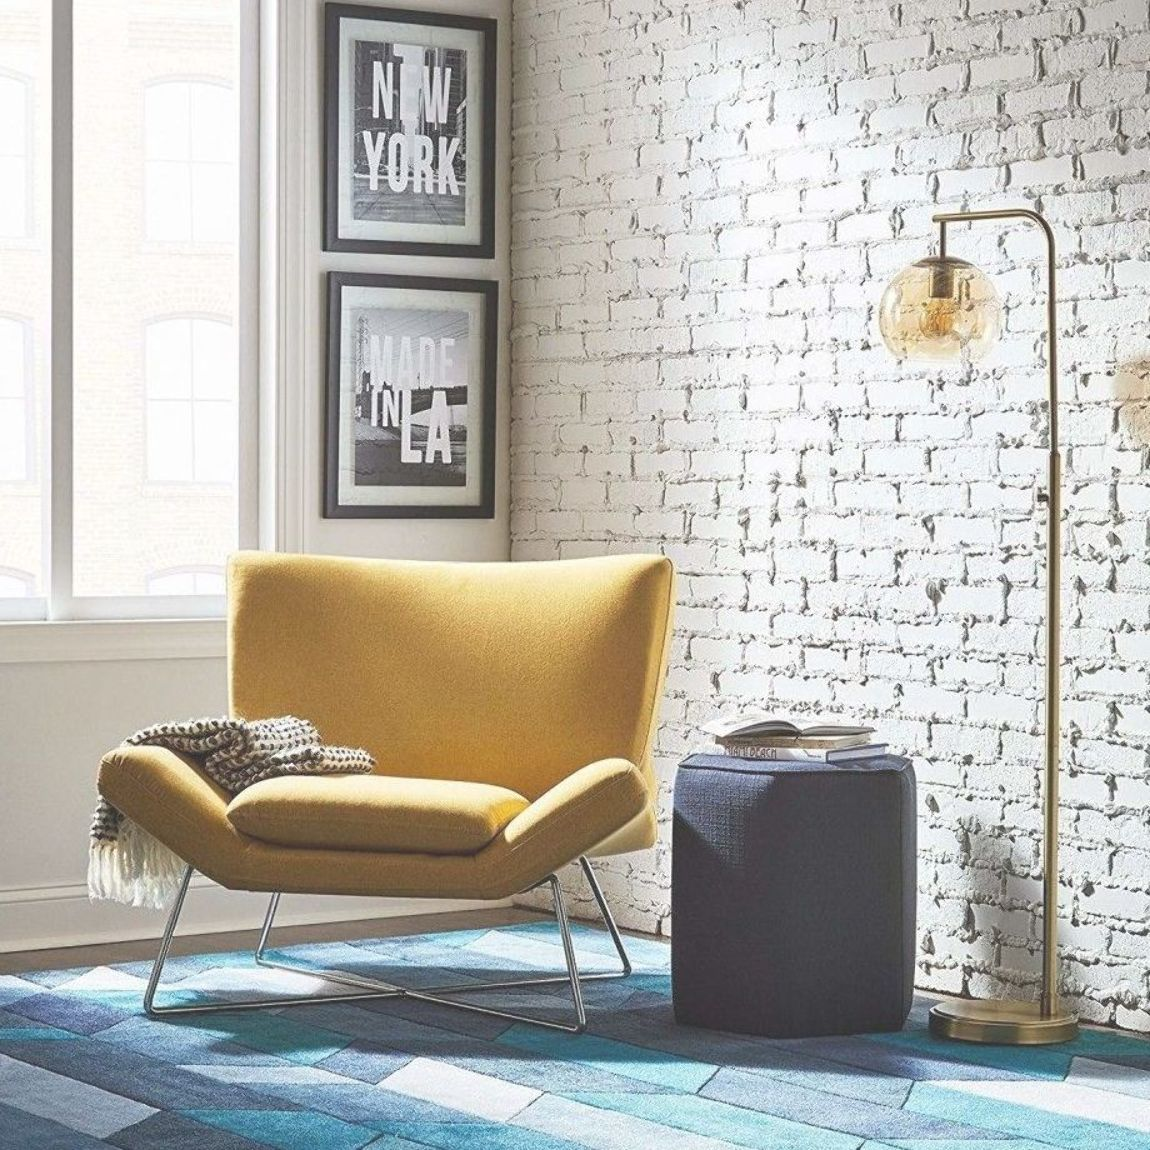 A Canary Yellow Accent Chair Bold Enough To Make A Statment In